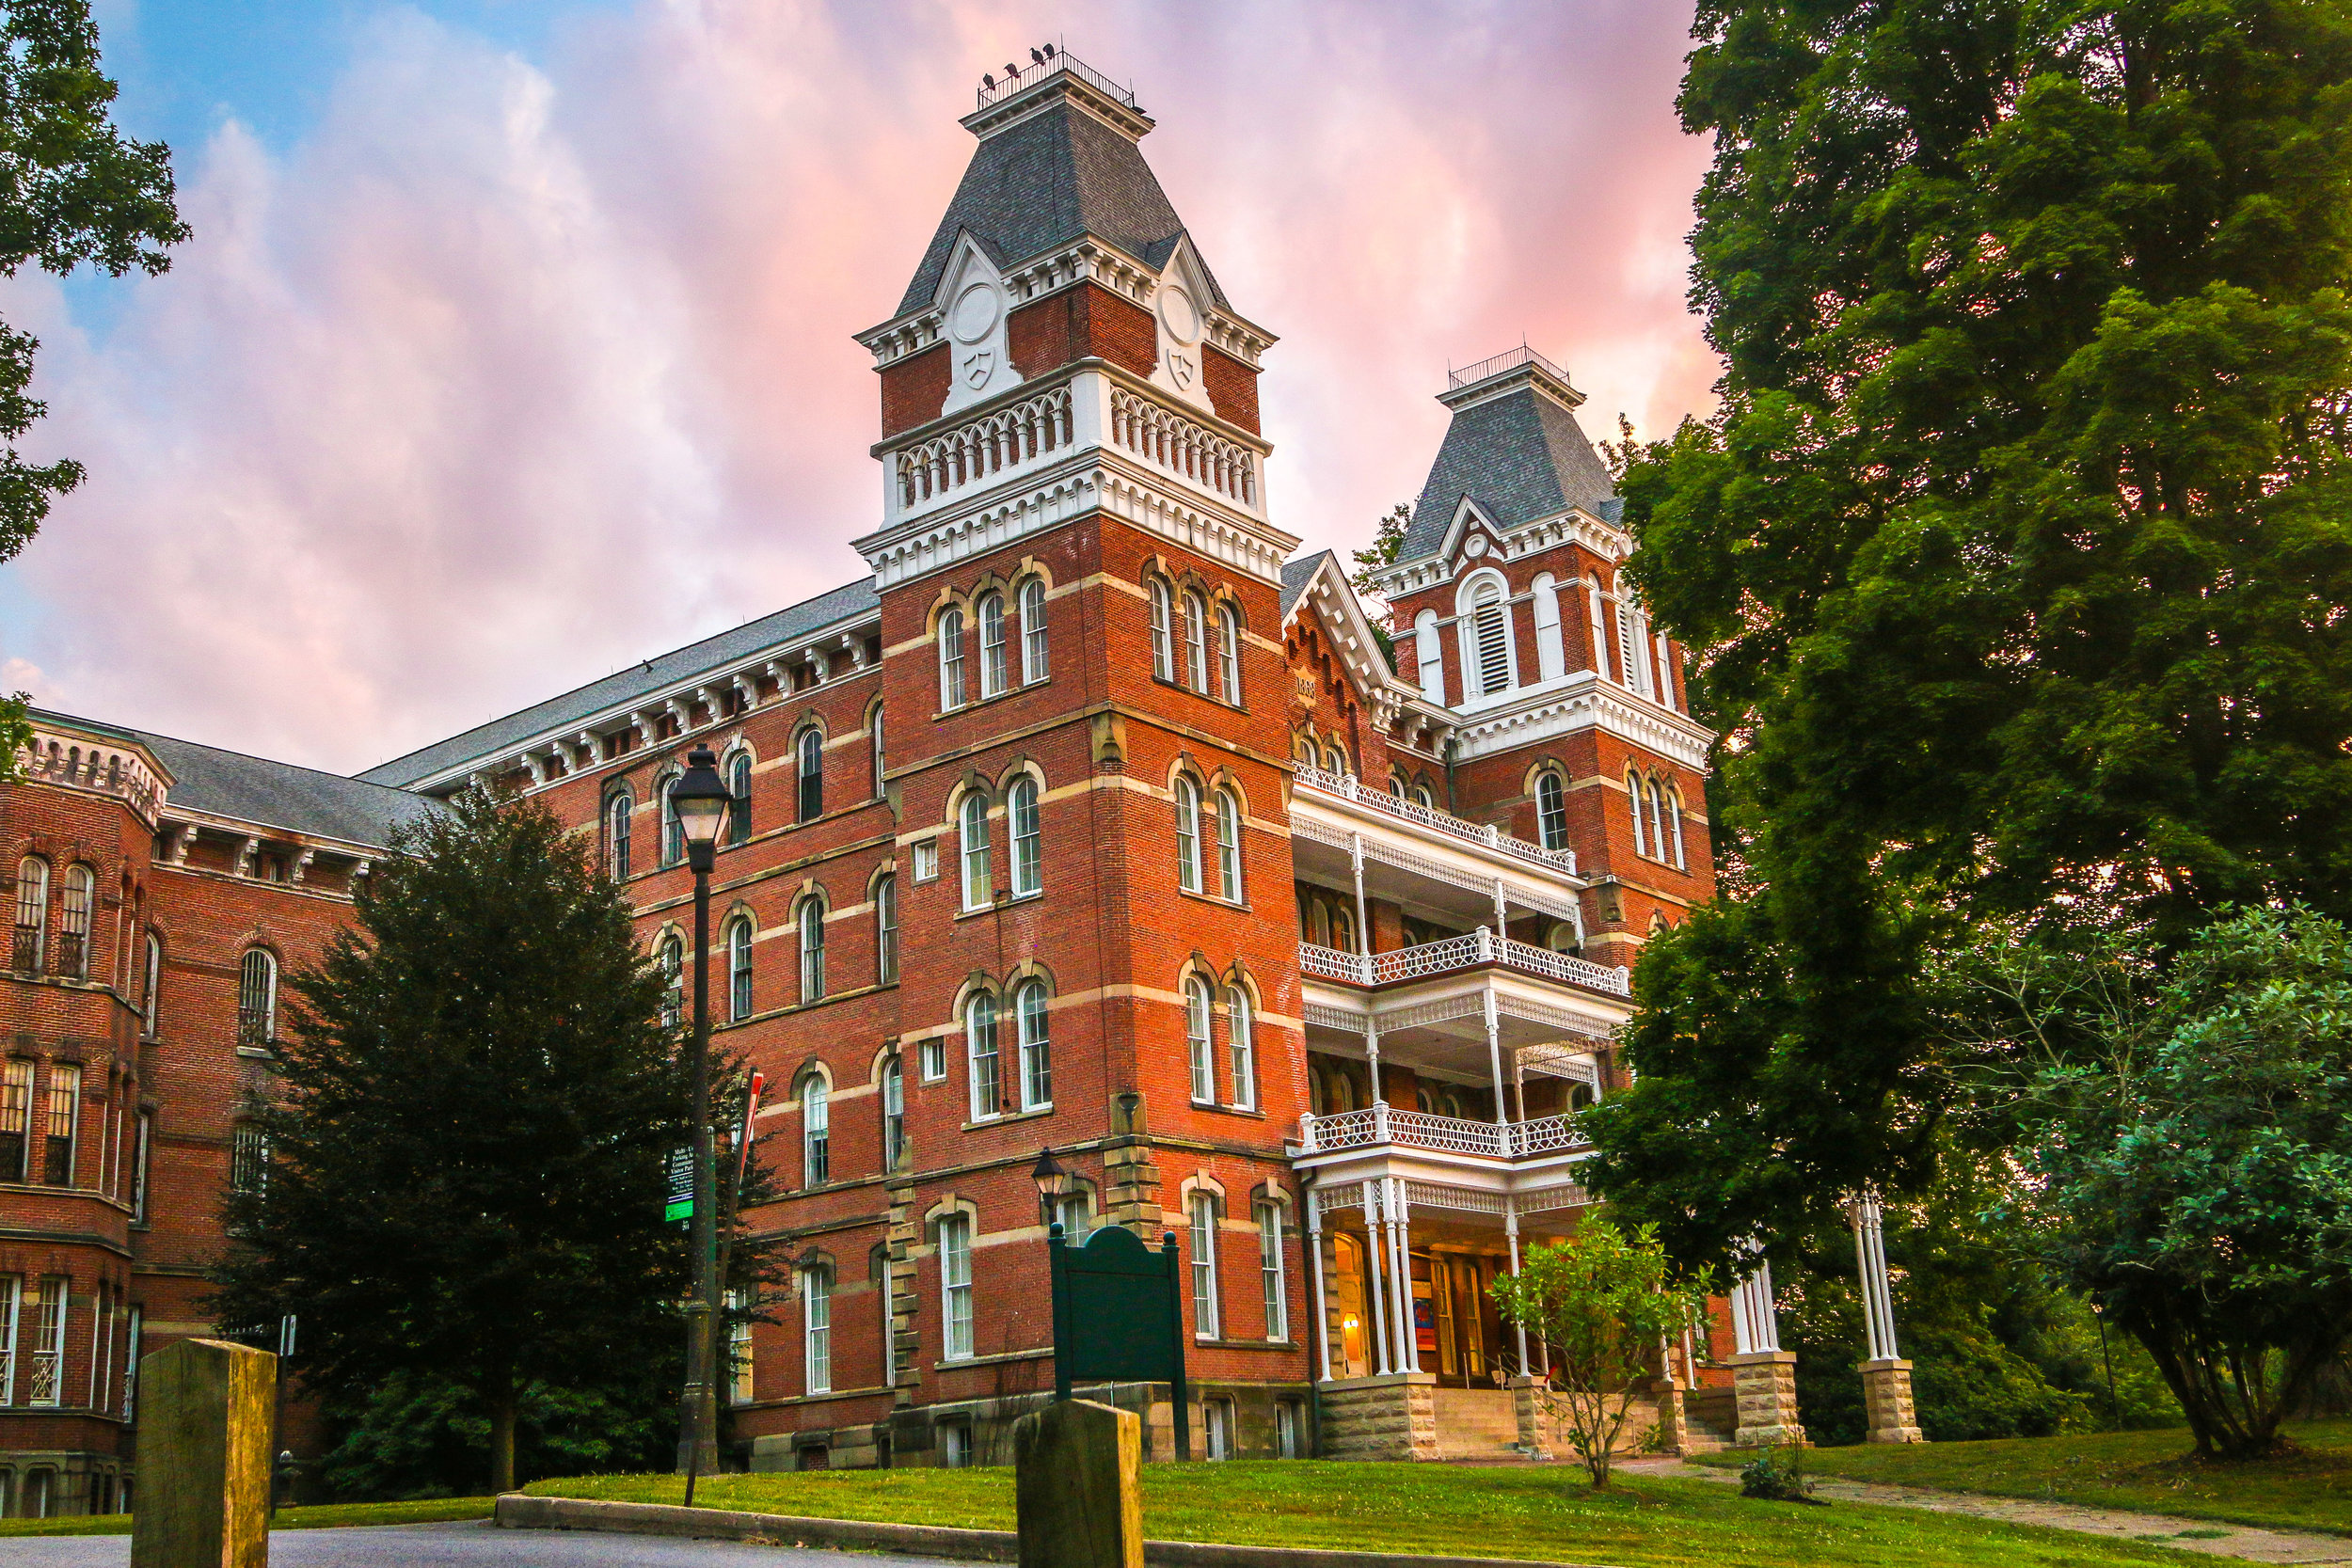 Published in a featured blog post by the Athens, Ohio Visitor's Bureau, link to the post  HERE